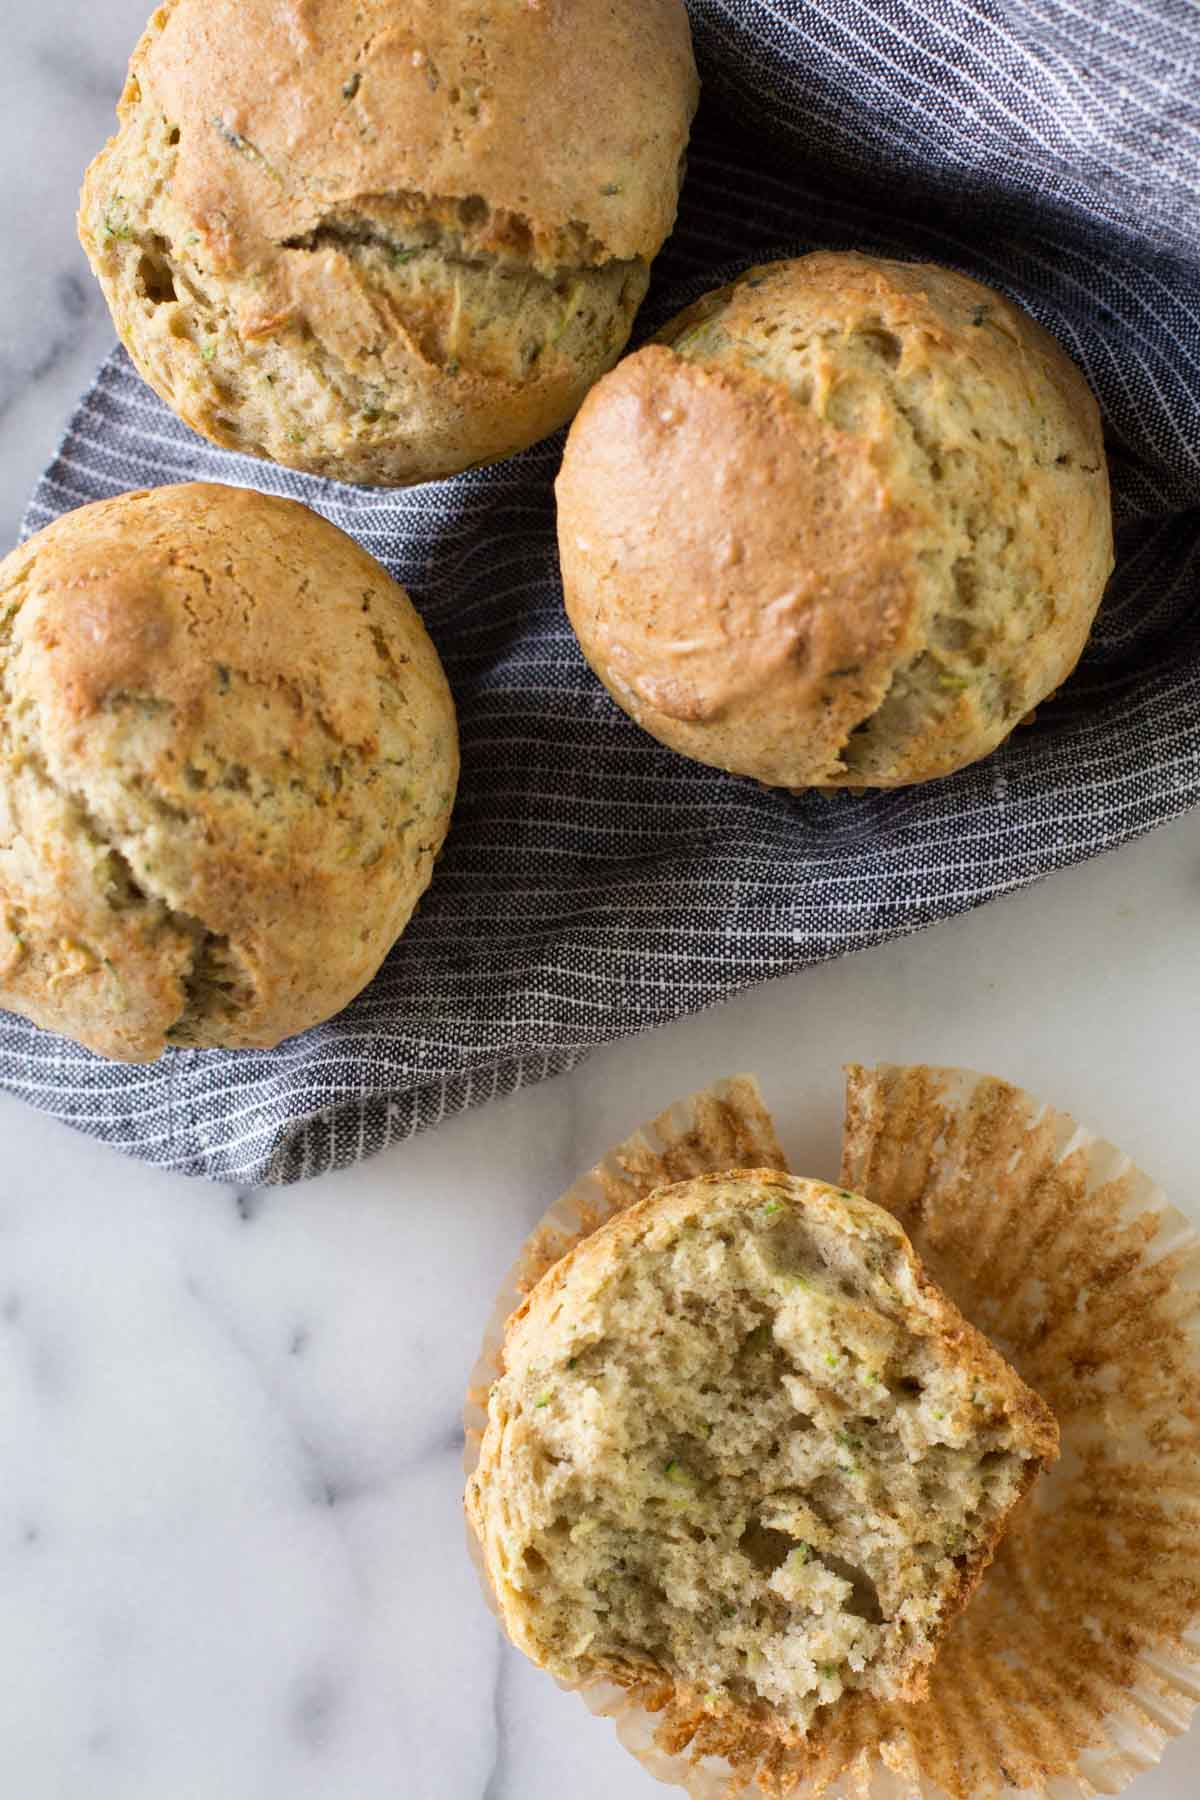 A half of a Healthier Zucchini Muffin sitting on its wrapper, with three more whole muffins sitting on a cloth napkin.